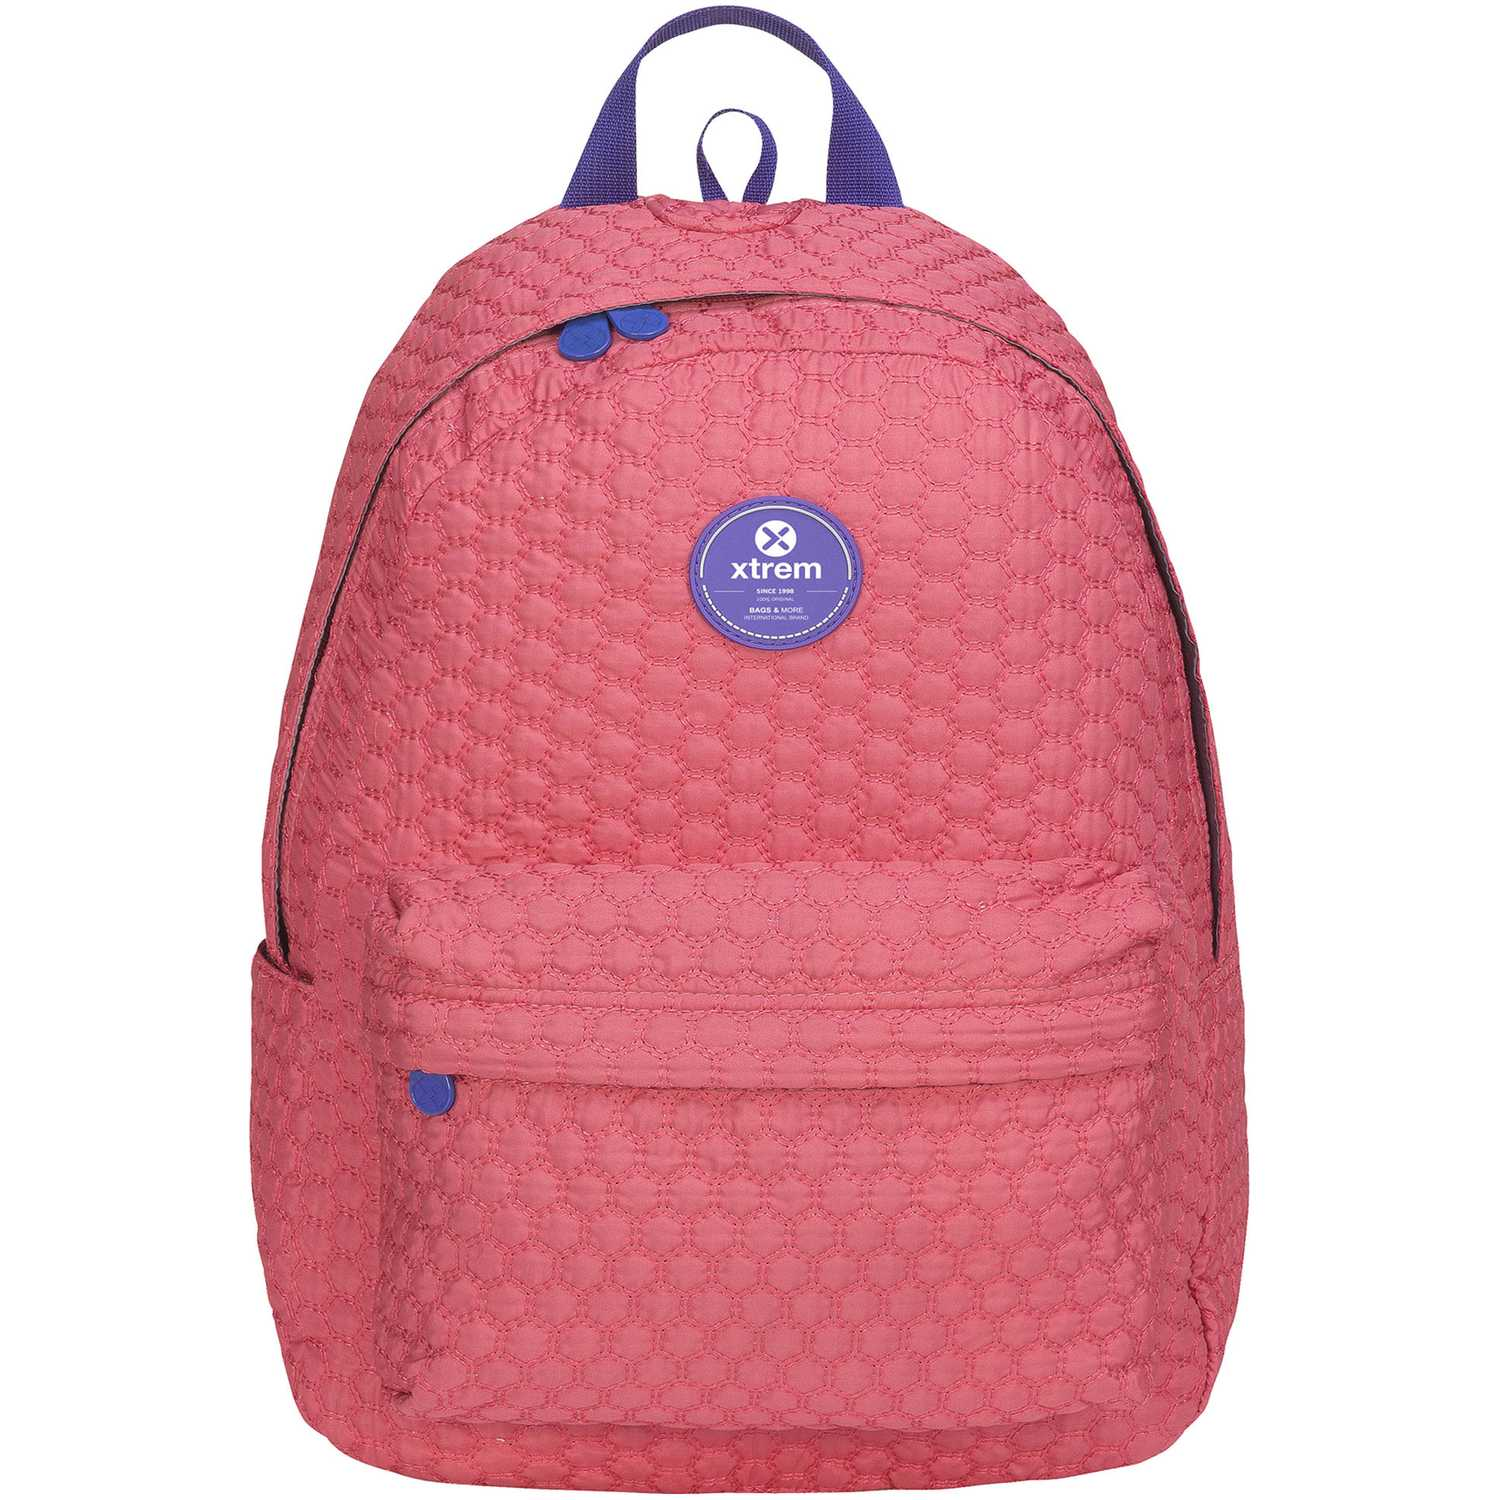 Mochila de Niña Xtrem Coral backpack quilt love bondy 810